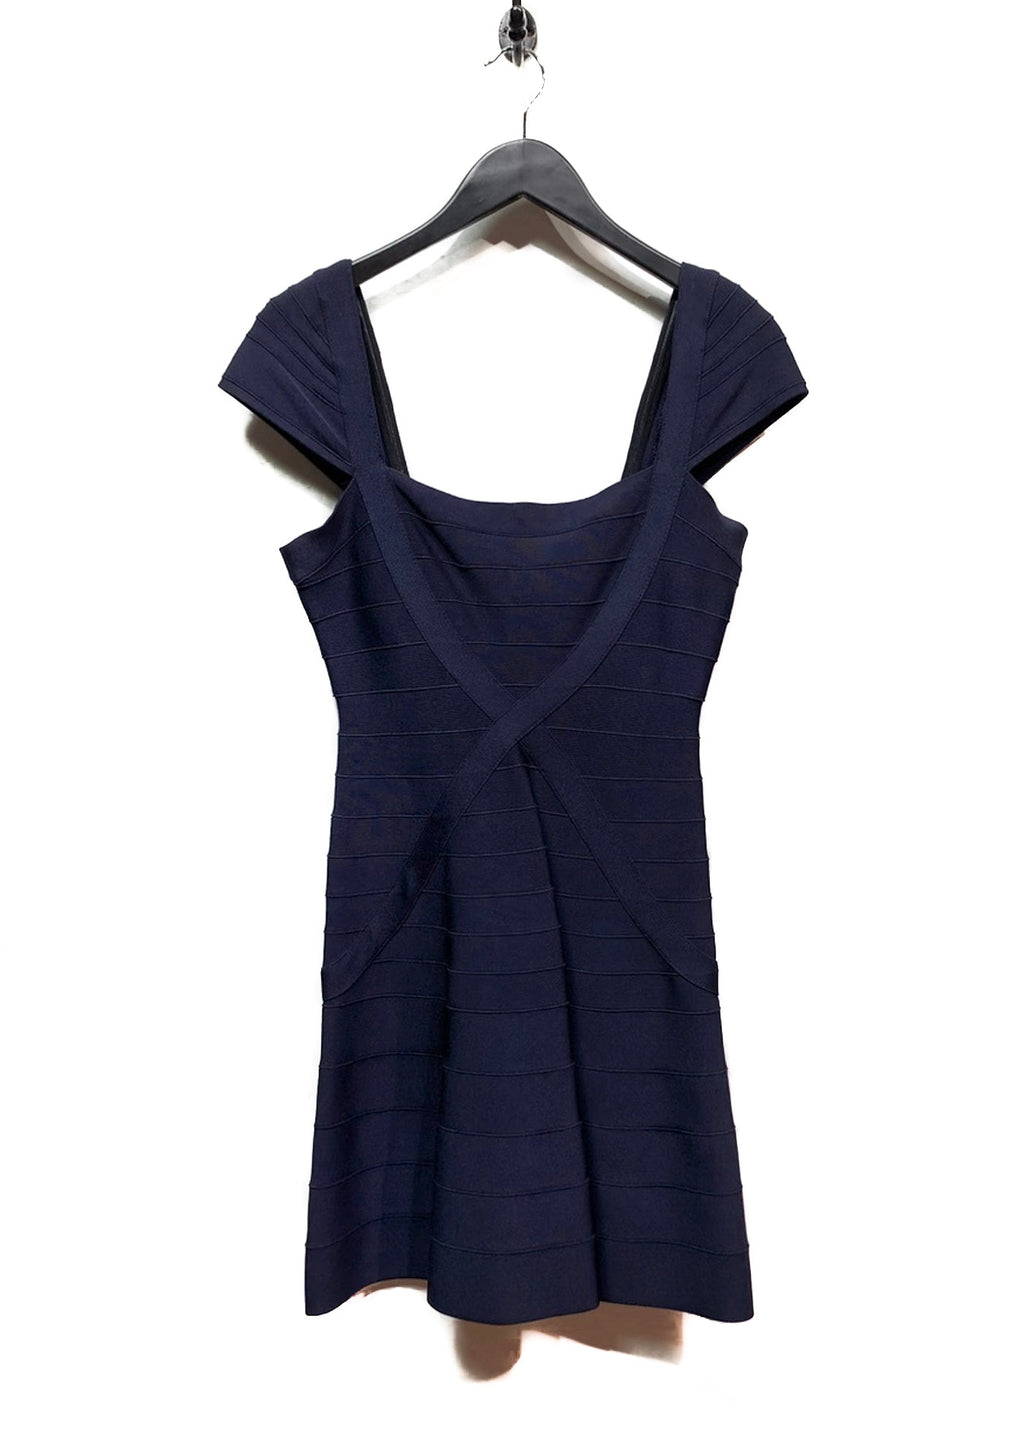 Hervé Léger Pacific Blue Navy Makayla Bandage Dress